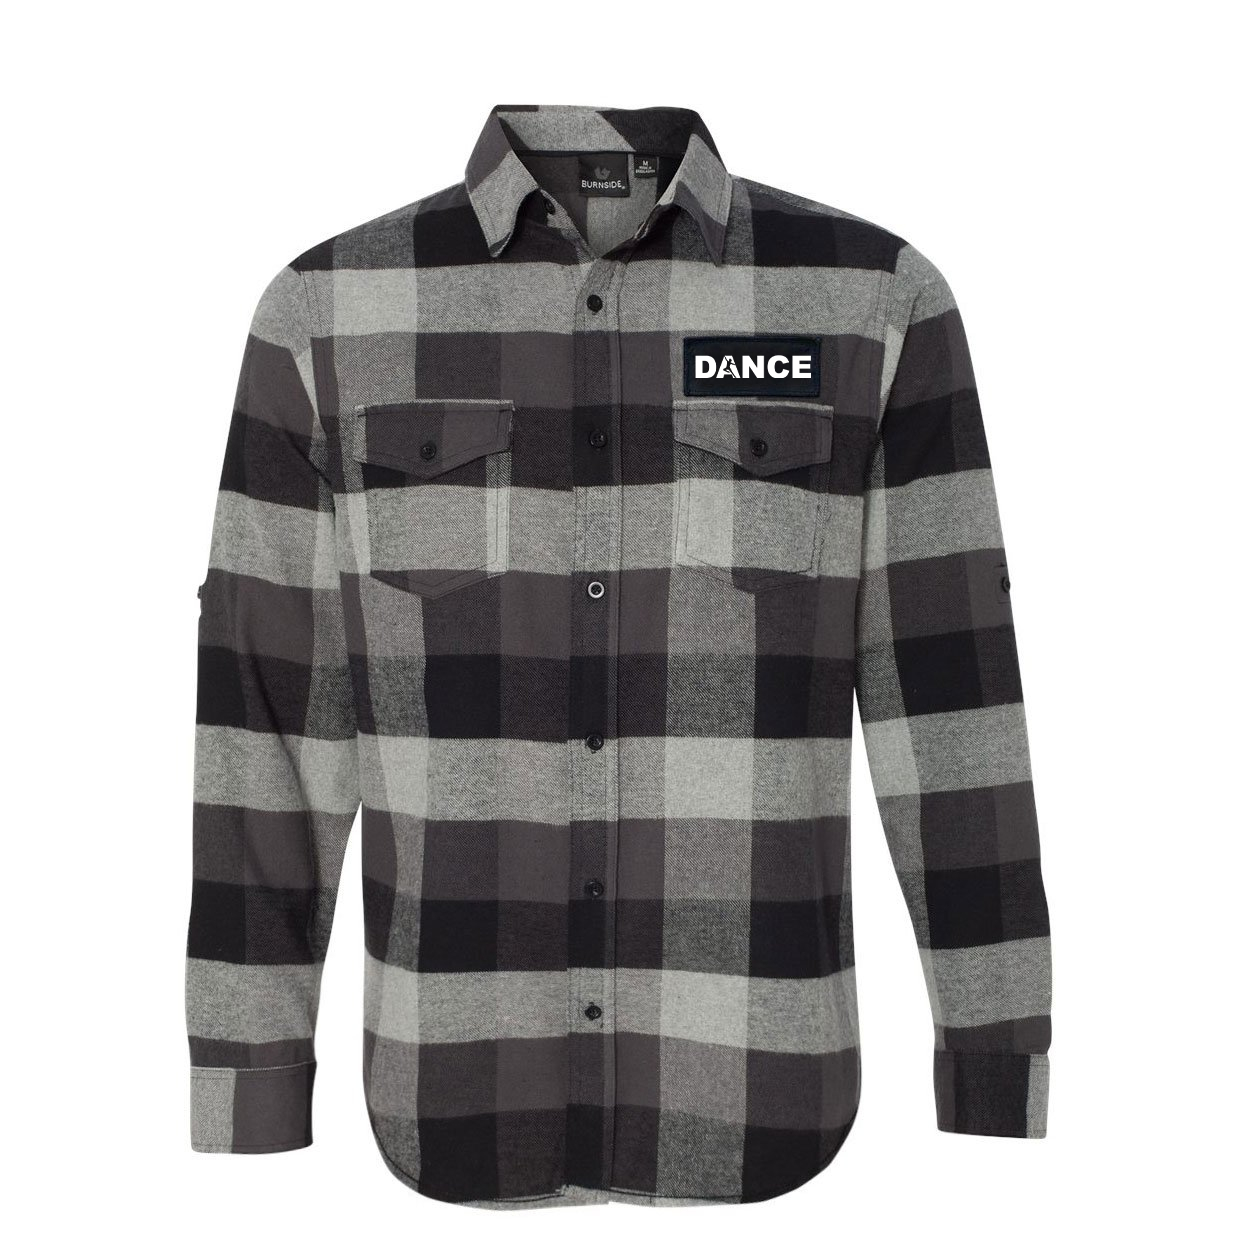 Dance Silhouette Logo Classic Unisex Long Sleeve Woven Patch Flannel Shirt Black/Gray (White Logo)